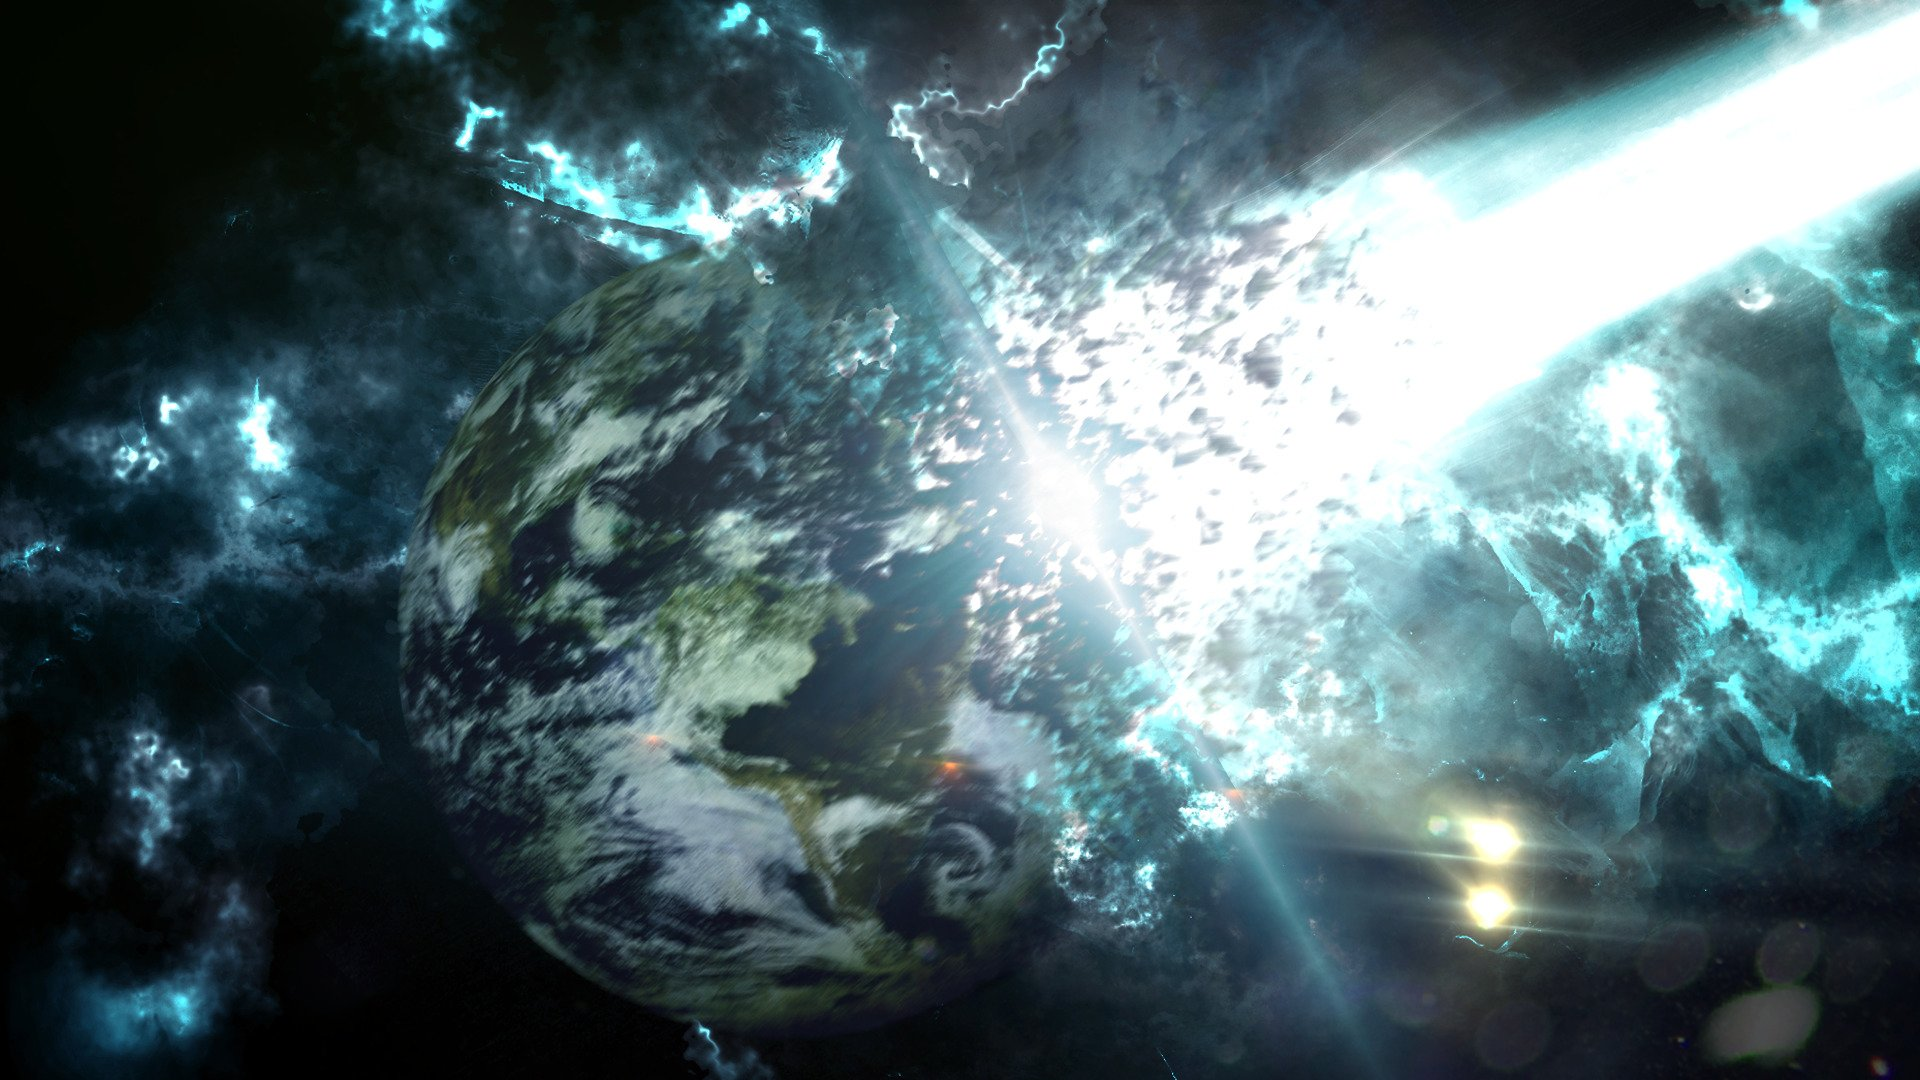 Anime Horror Wallpaper Space Meteors Earth Apocalyptic Destruction Science